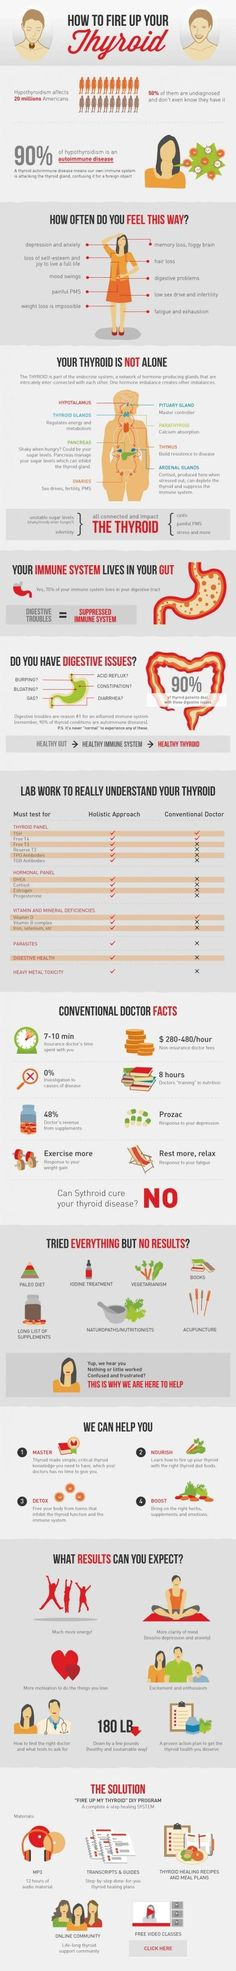 Hypothyroidism Diet - Thyroid Healing Program Infographic Thyrotropin levels and risk of fatal coronary heart disease: the HUNT study. Thyroid Disease, Thyroid Health, Heart Disease, Low Thyroid, Thyroid Hormone, Thyroid Issues, Thyroid Gland, Thyroid Symptoms, Autoimmune Disease